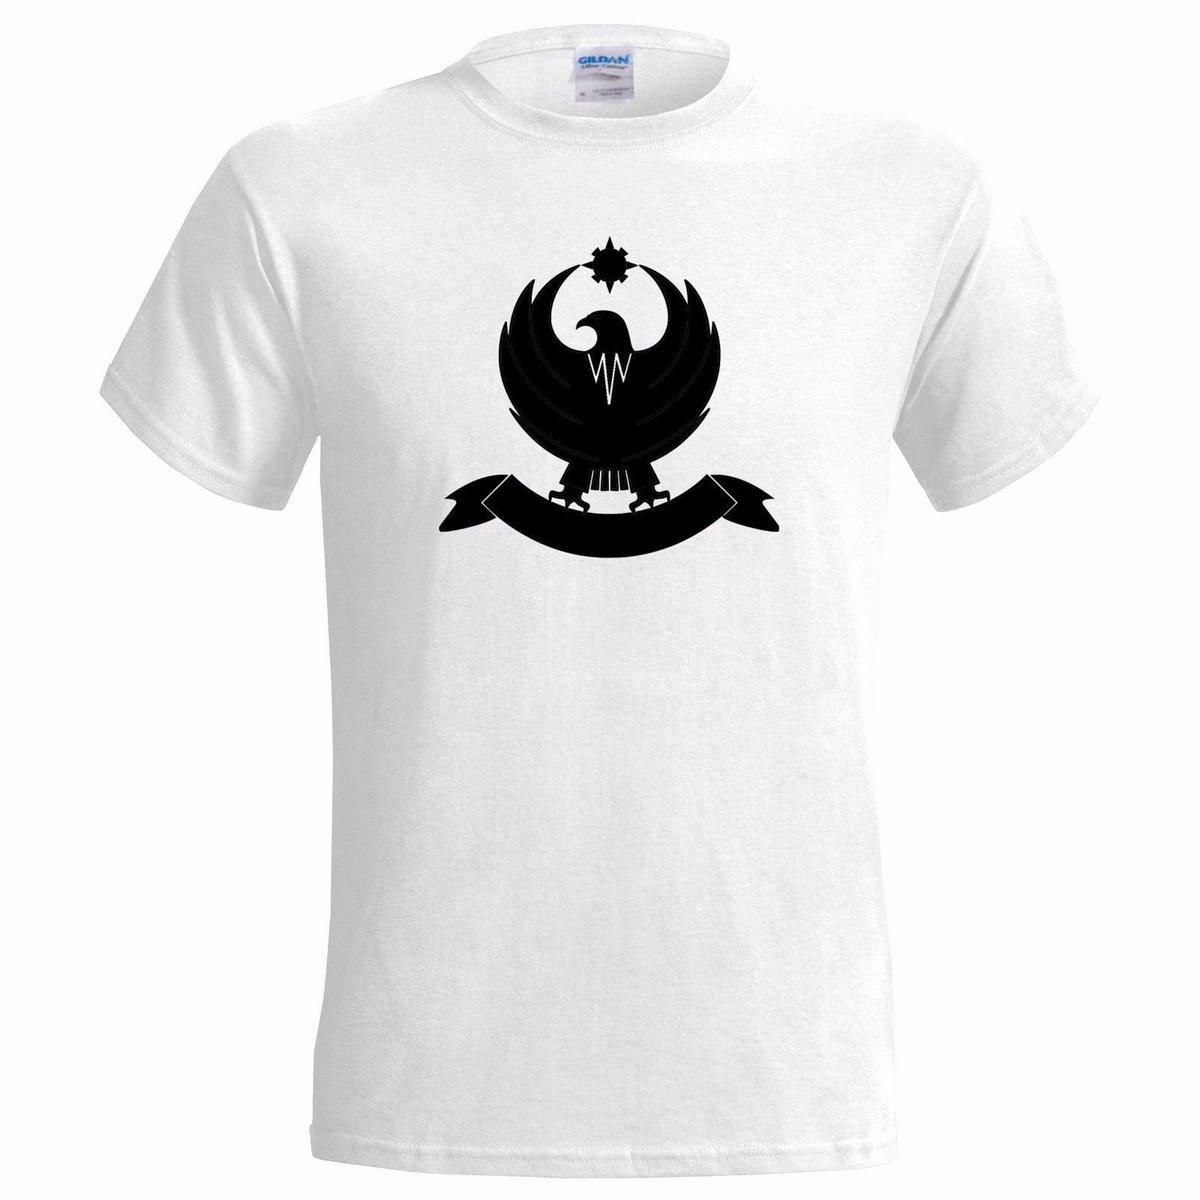 3519b0d2ca18 KURD COAT OF ARMS SILHOUETTE MENS T SHIRT KURDISH KURDS KURDISTAN MUSLIM  ISLAM The Coolest T Shirts T Shirt Shirt Designs From Amesion33, $12.08|  DHgate.Com